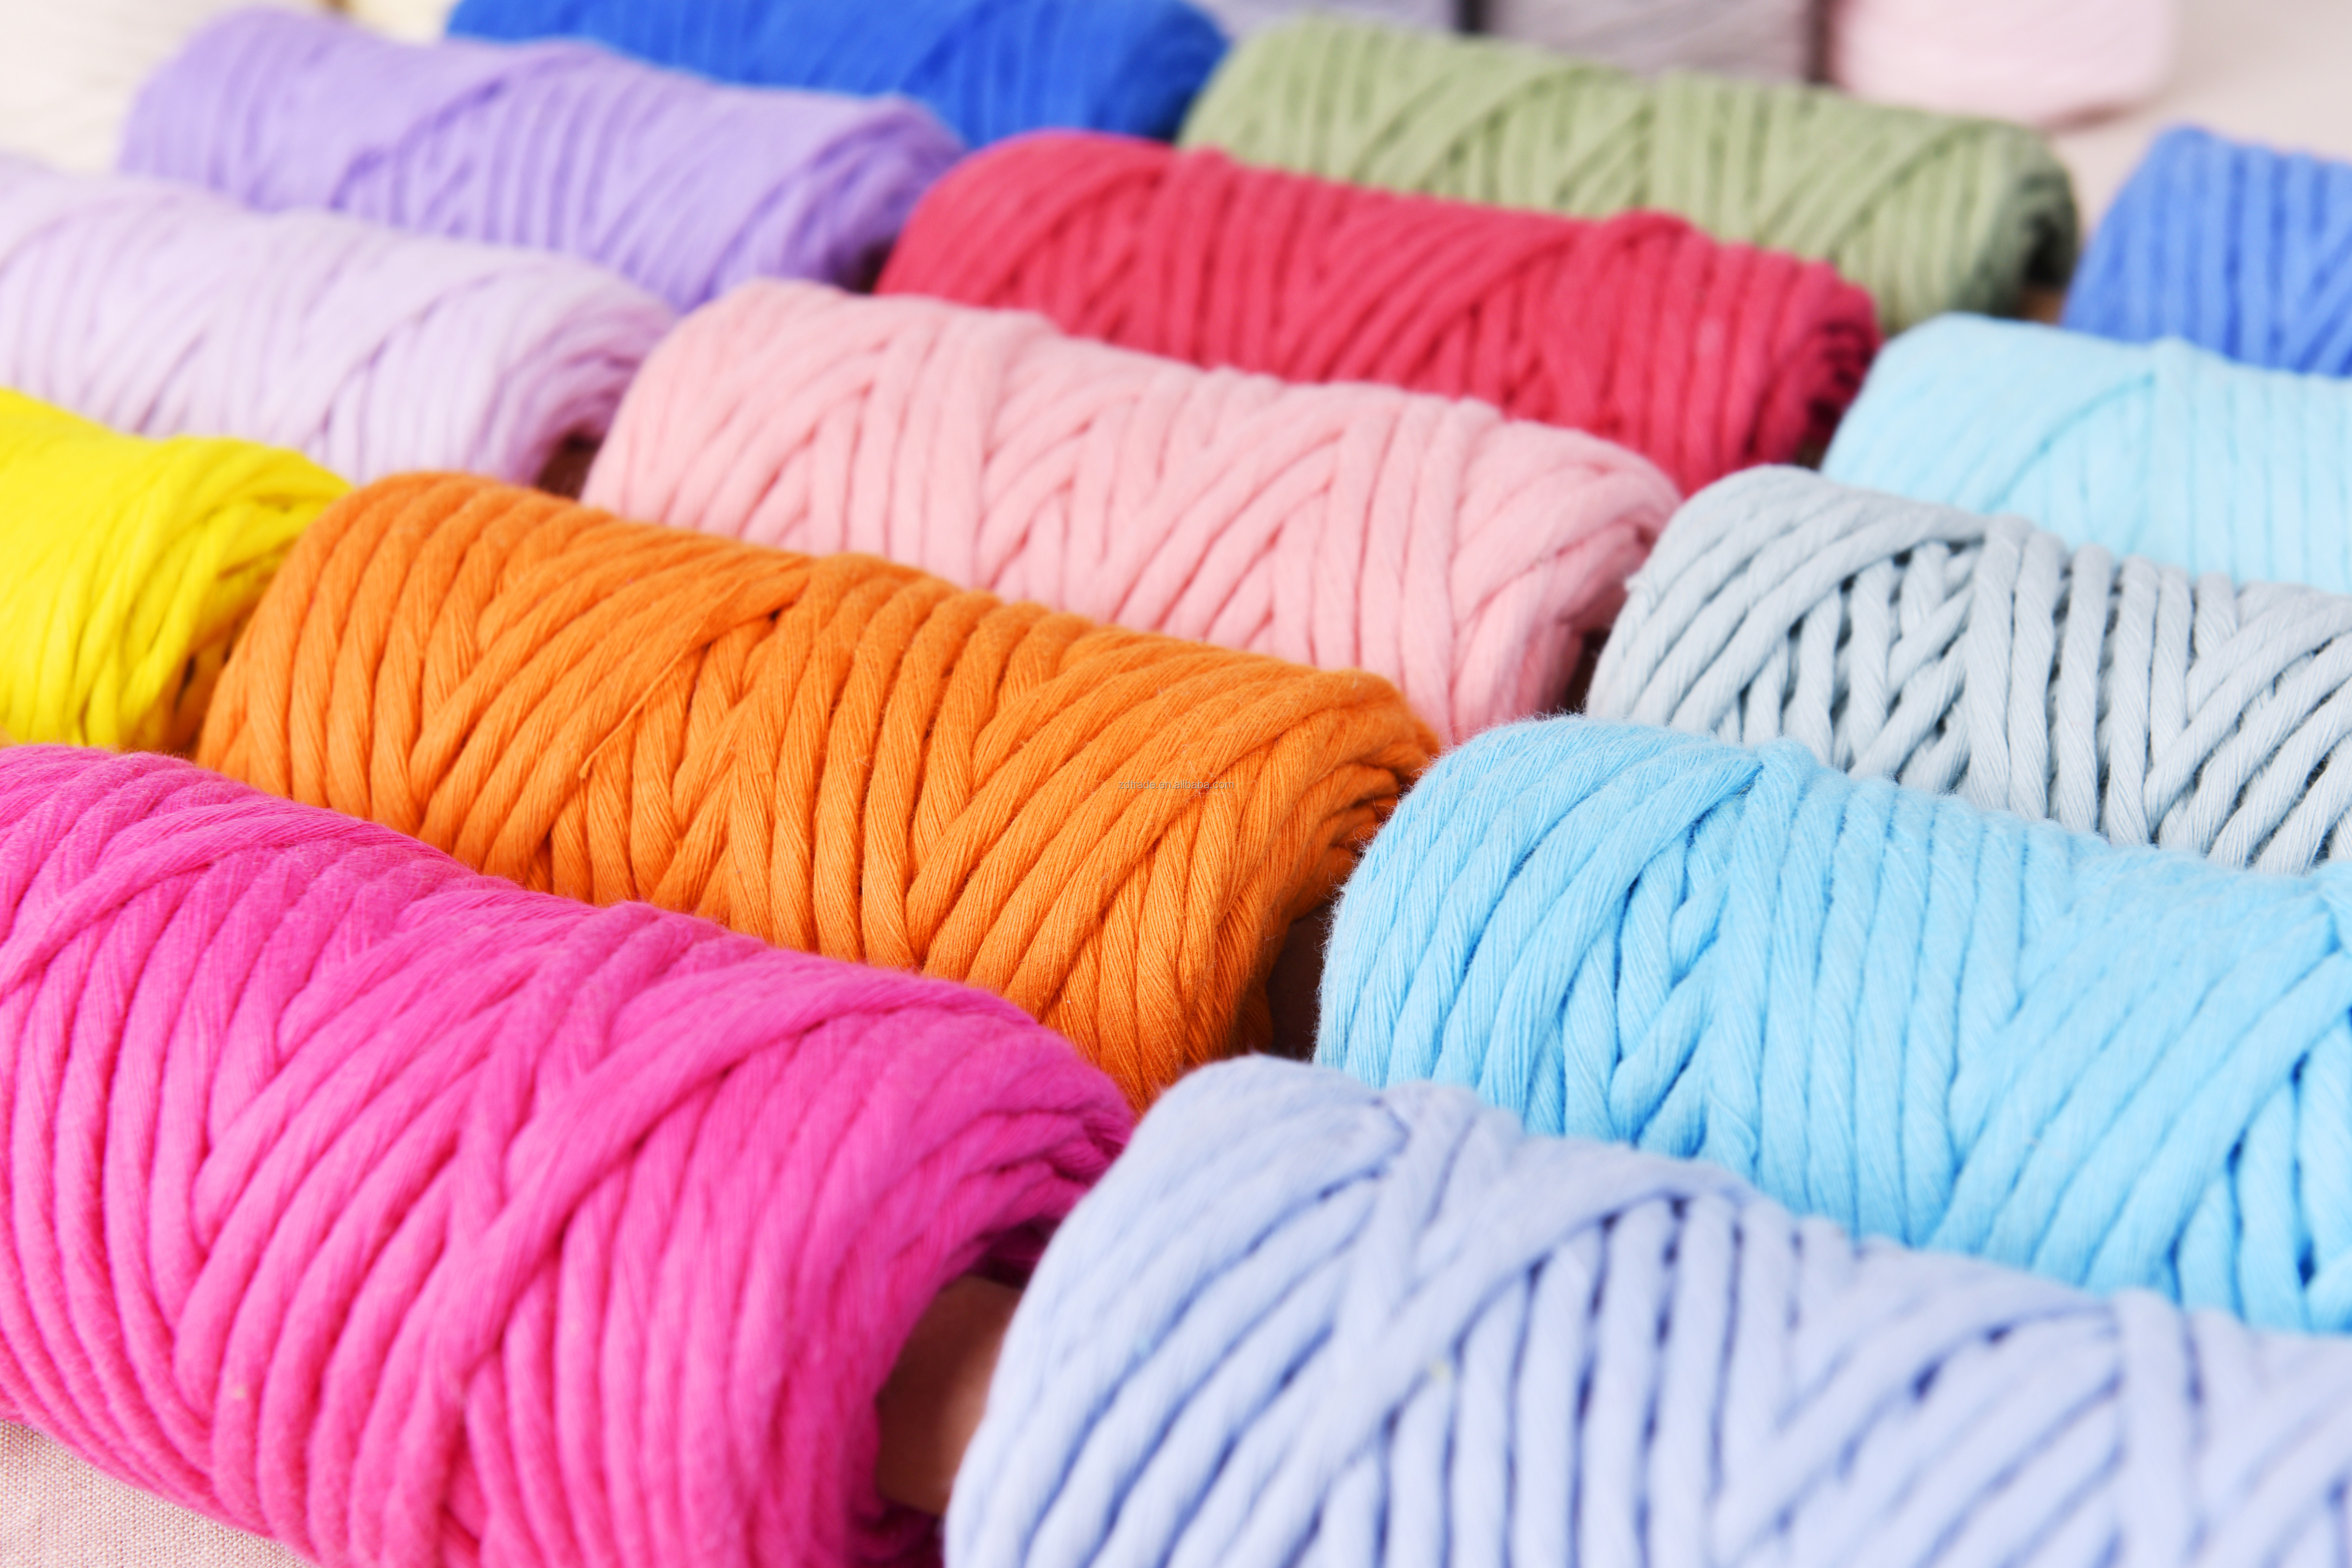 SINGLE TWIST Cotton MACRAME ROPE 90yards a Roll Super Soft Cotton Rope, Macrame Cotton Ropes